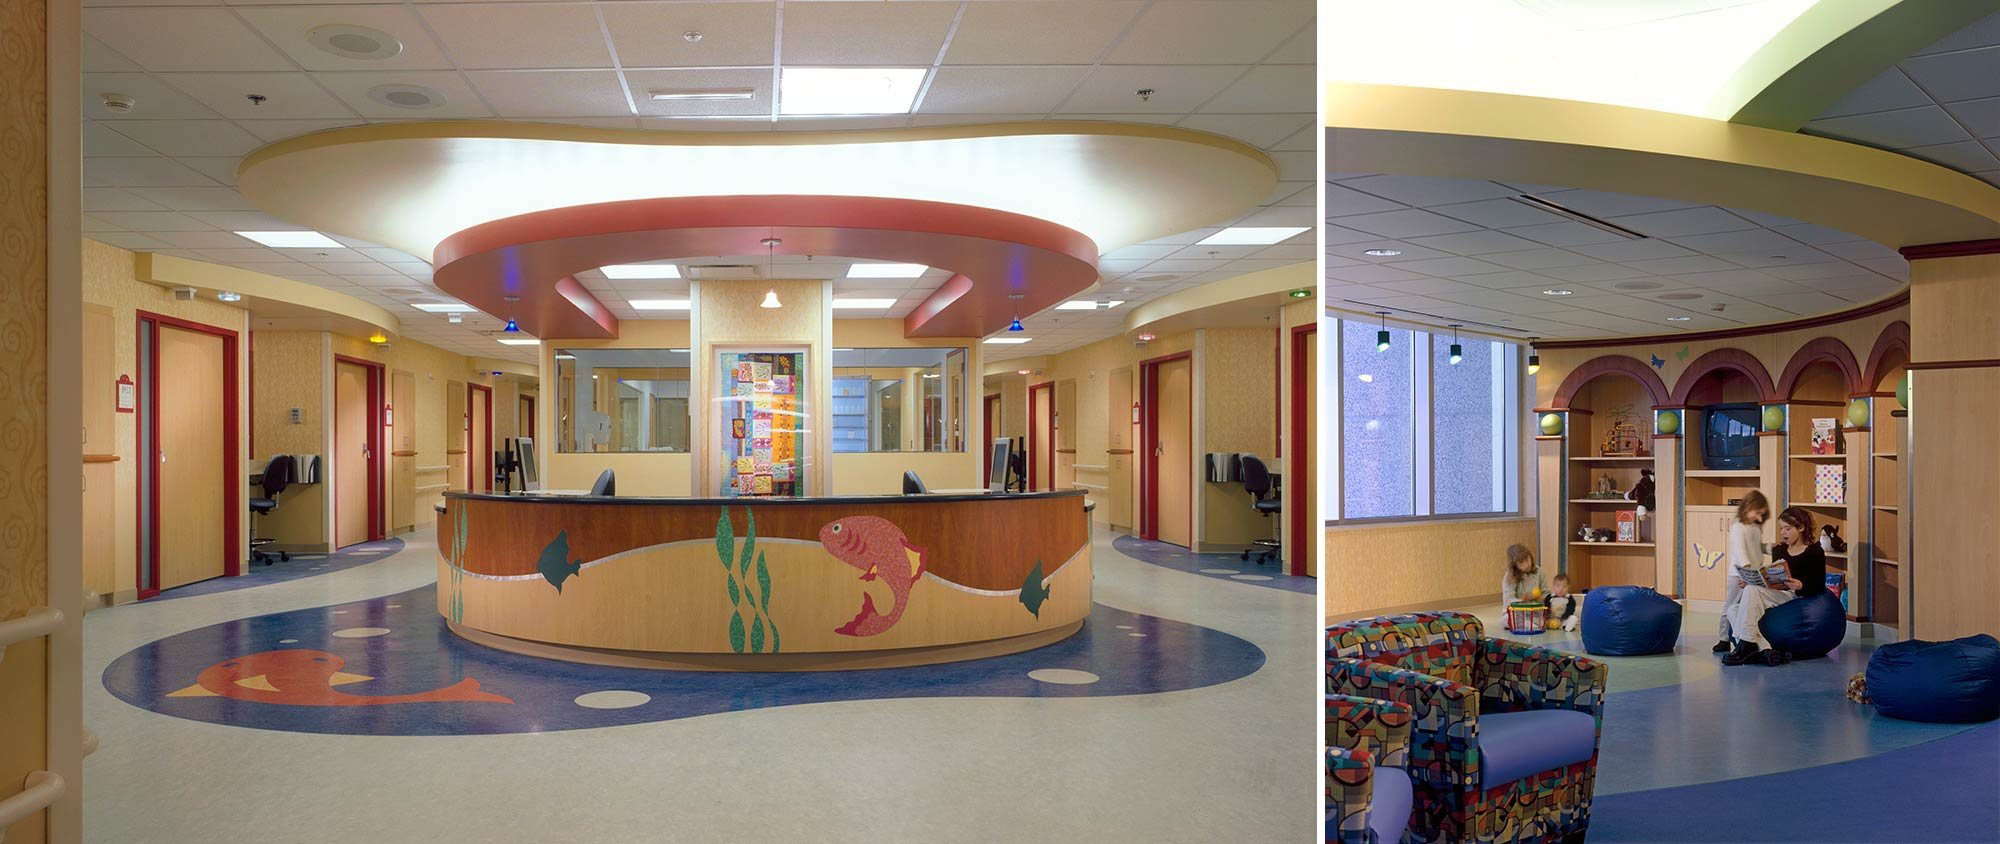 Monroe Carell Jr. Children's Hospital at Vanderbilt